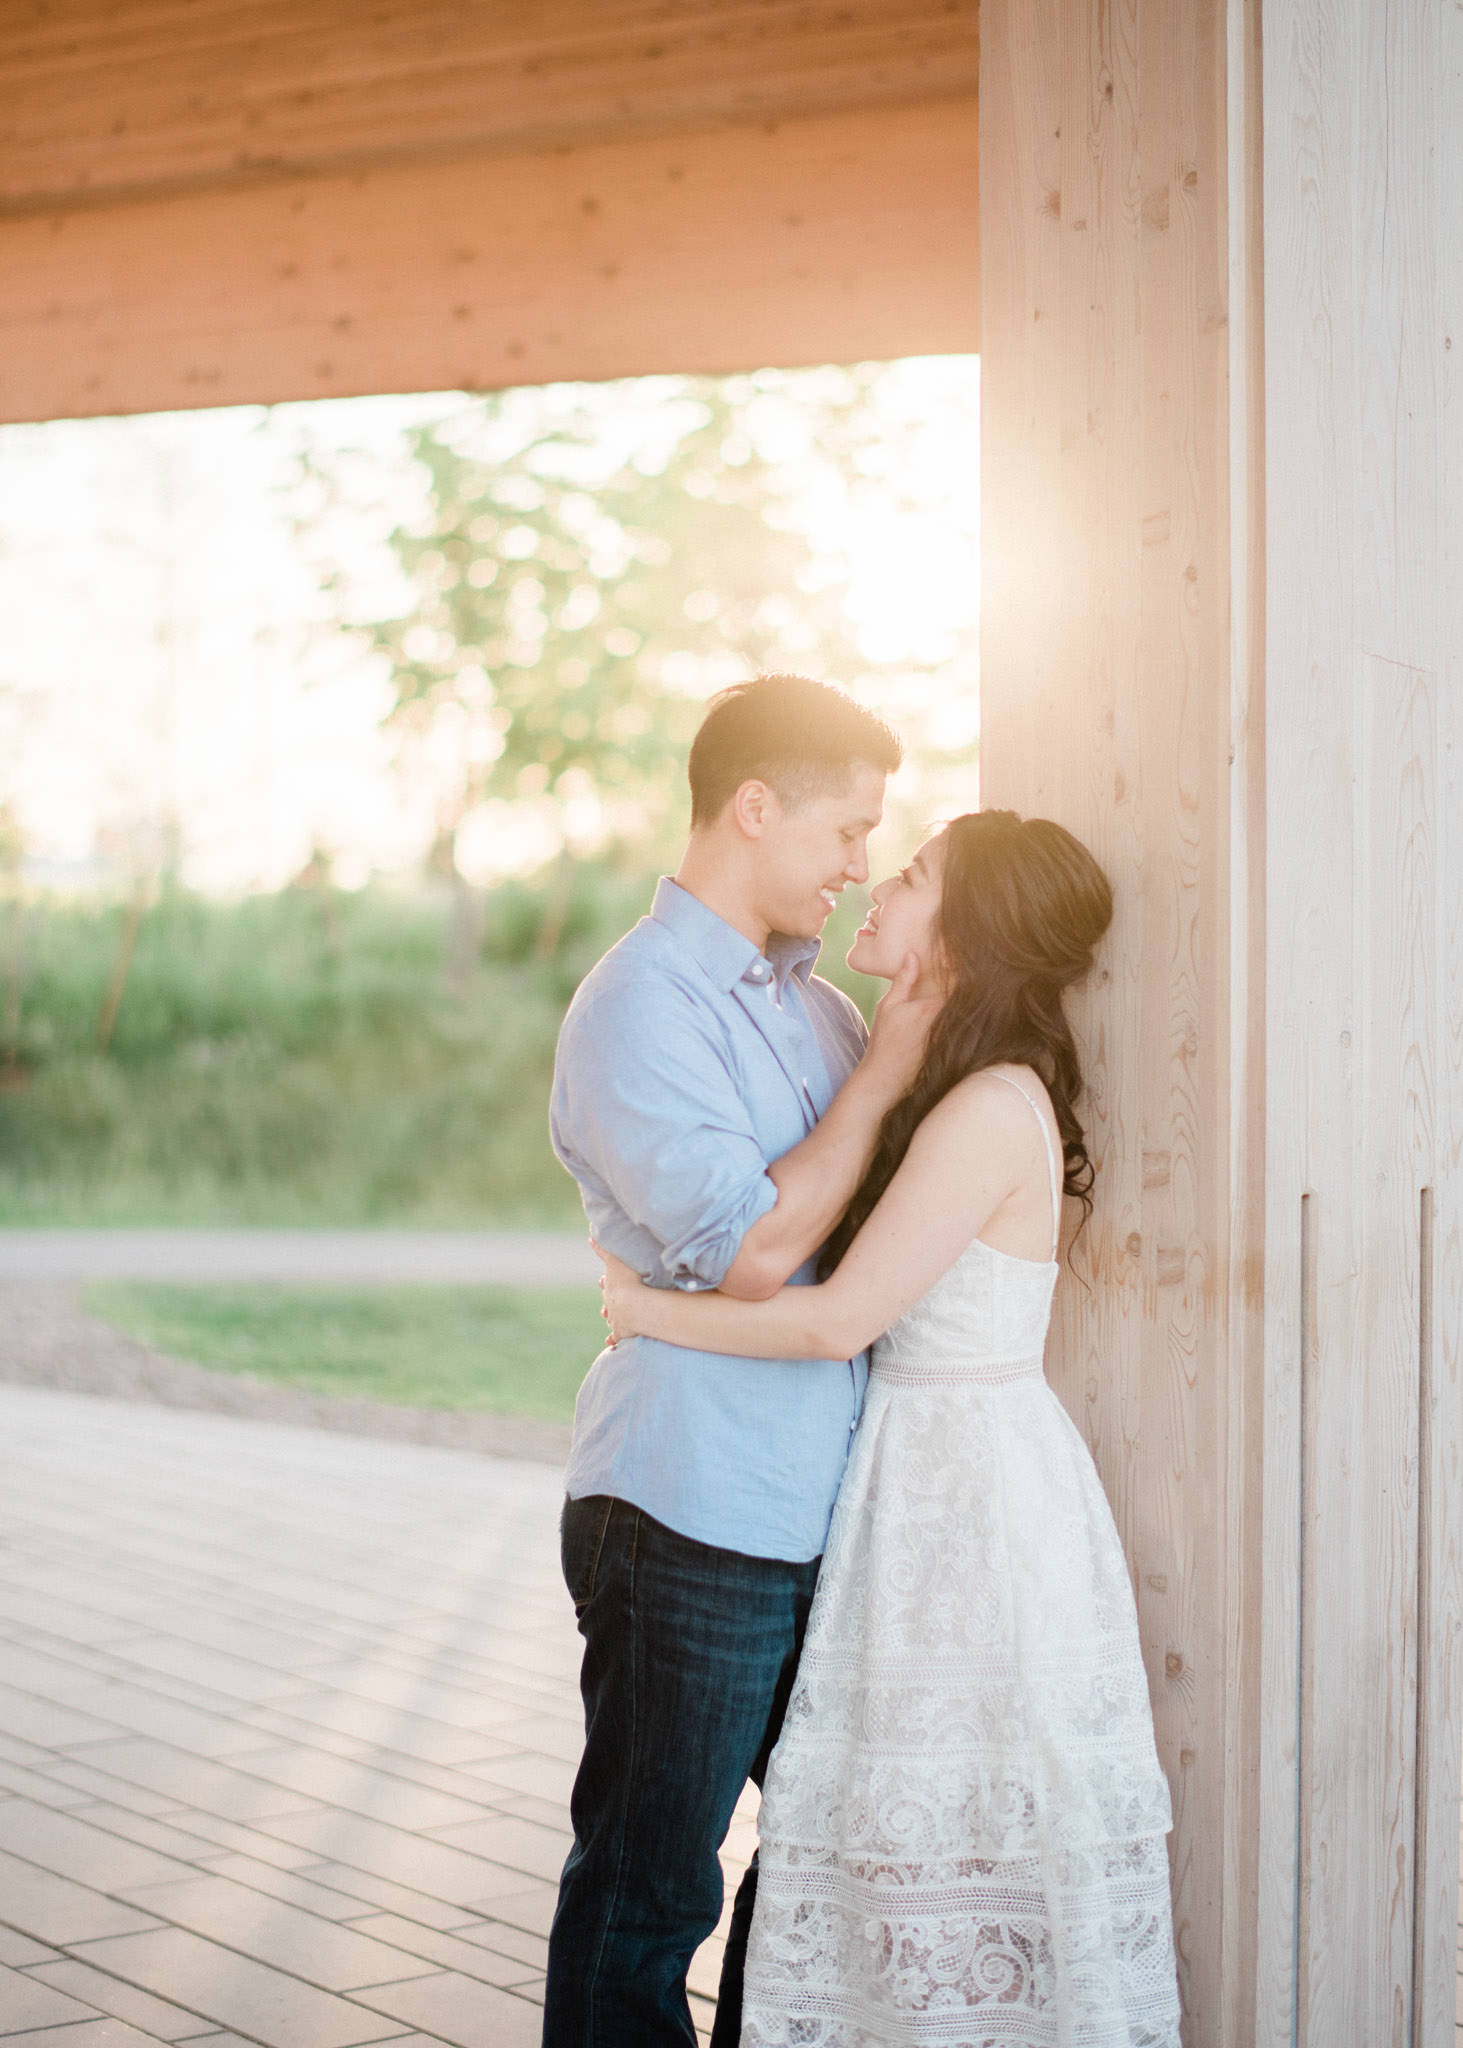 romantic photo of couple under the pavilion at Trillium Park during sunset